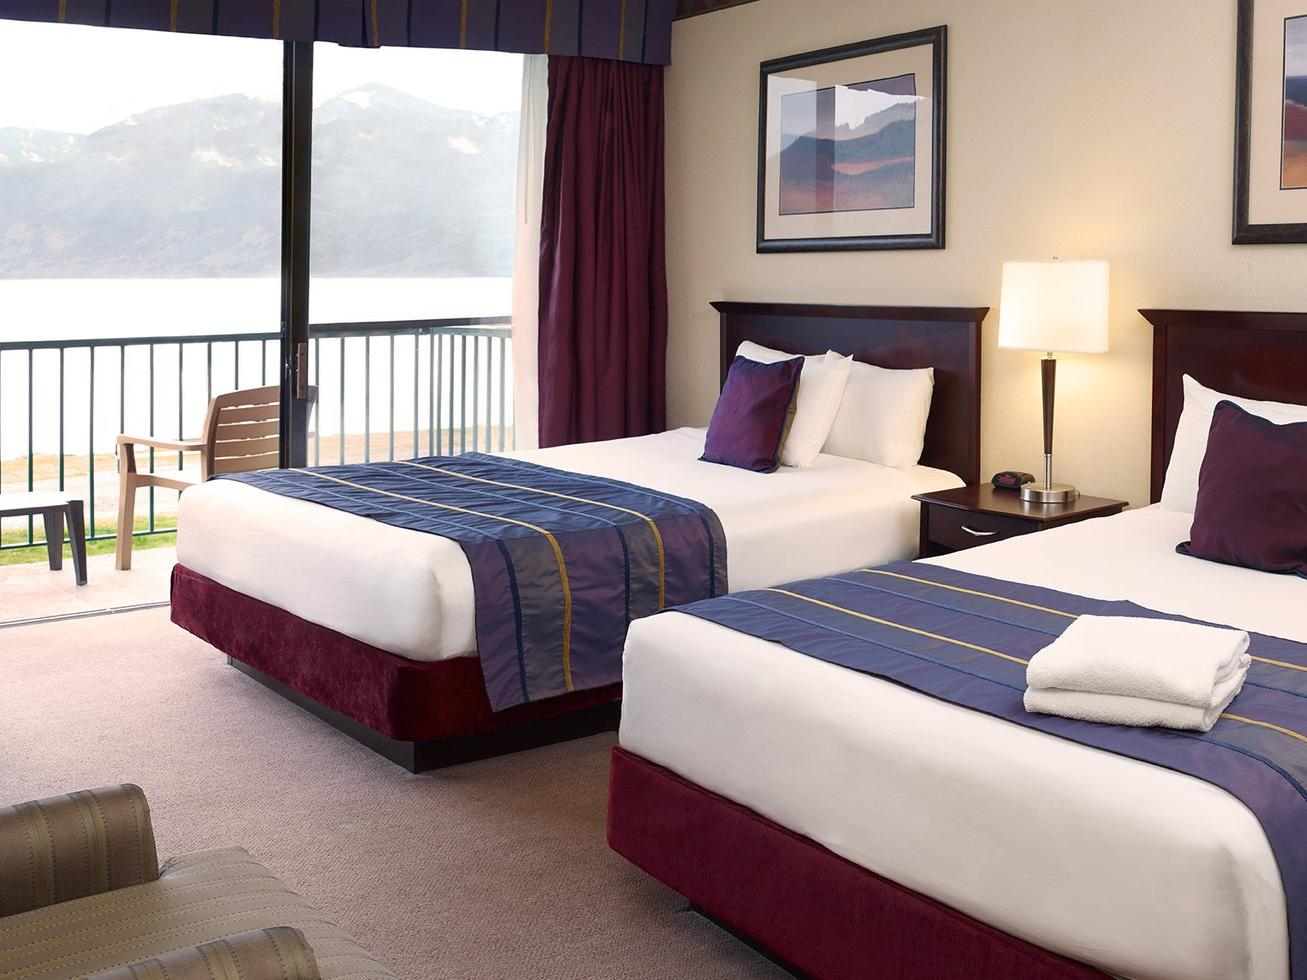 two beds in hotel room with balcony overlooking ocean